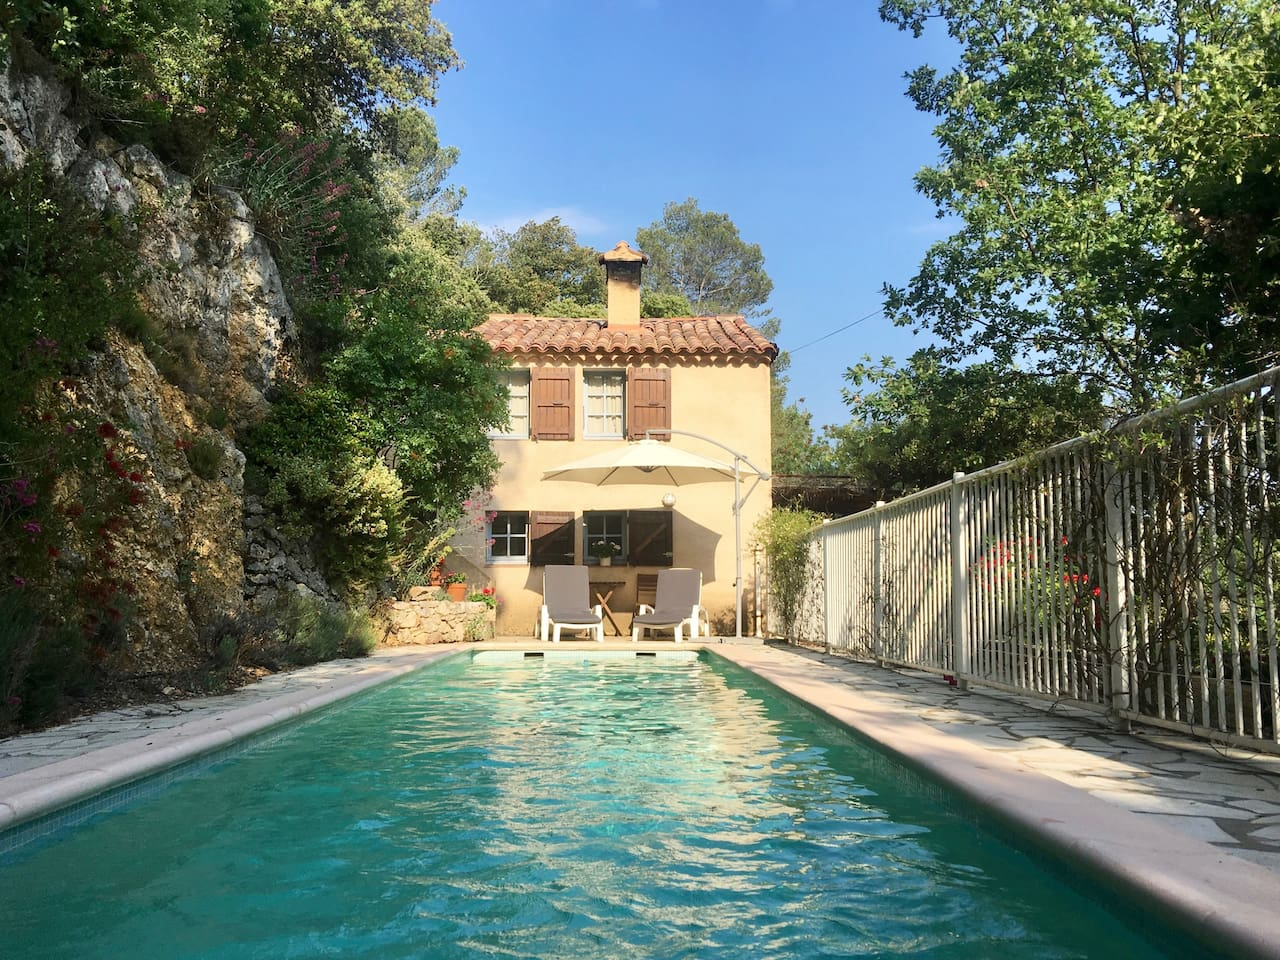 Welcome to Maison Genet in Green Provence